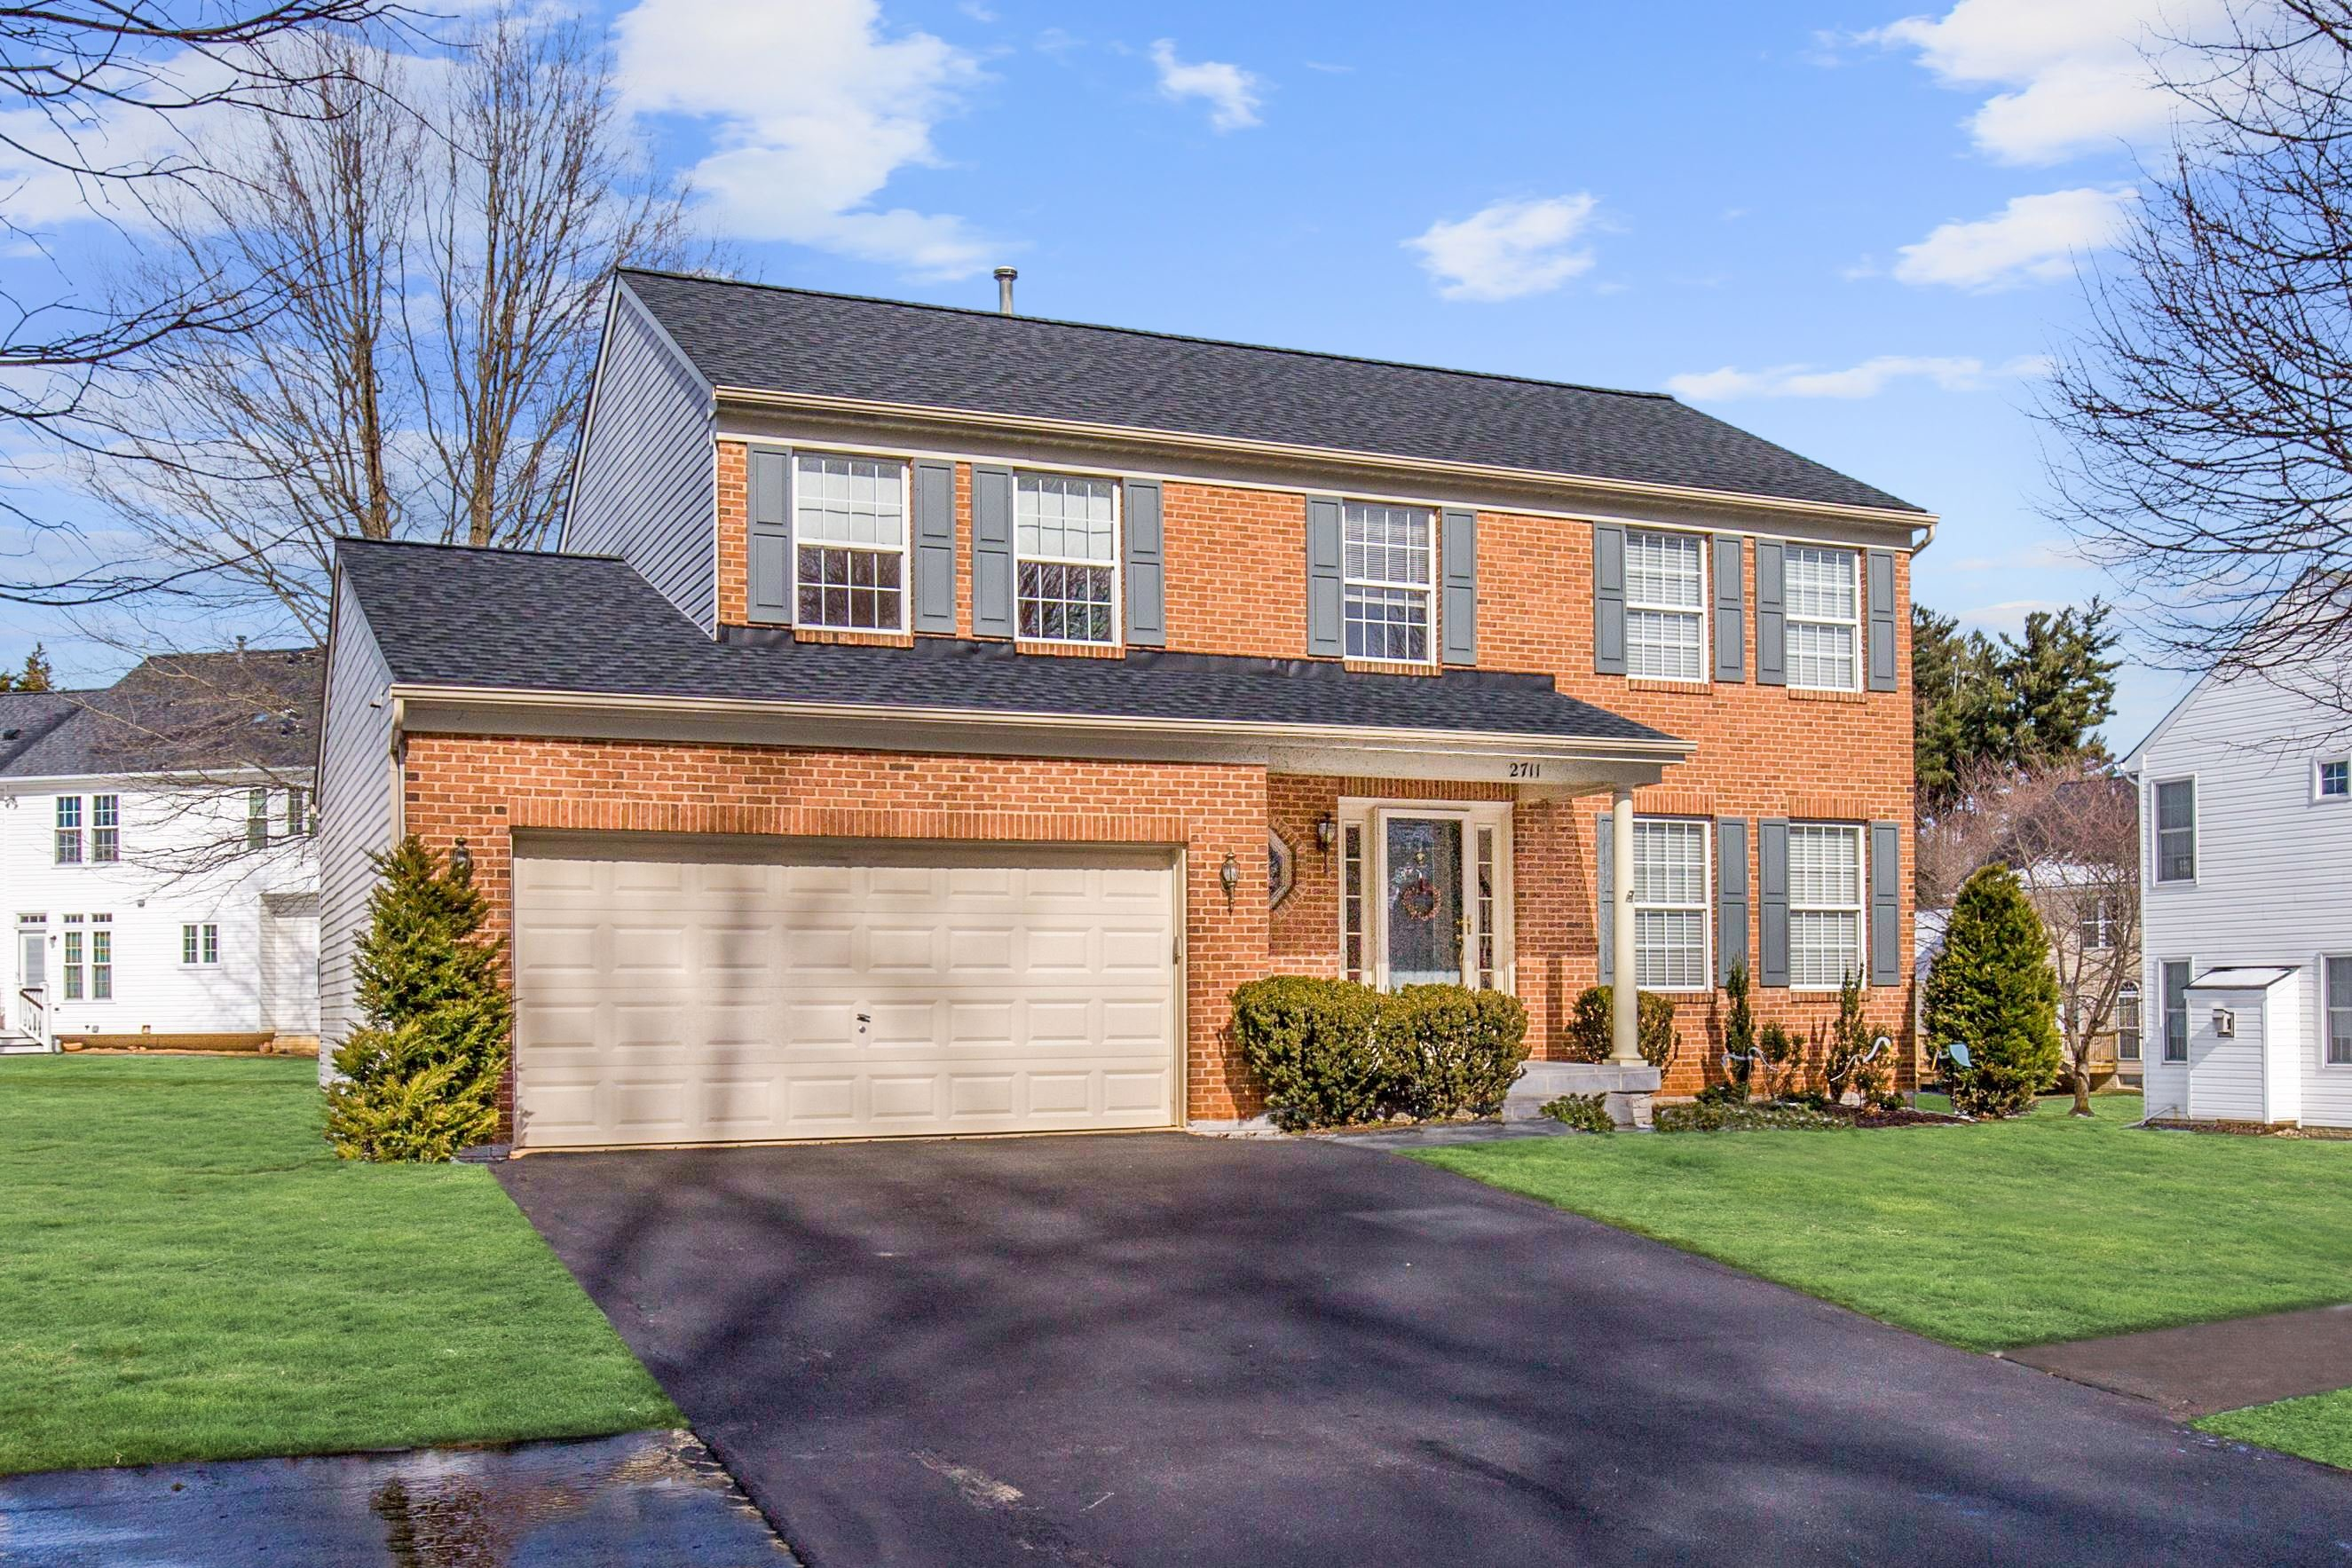 PRICE REDUCED: Spacious And Light-Filled Colonial In Manor Oaks